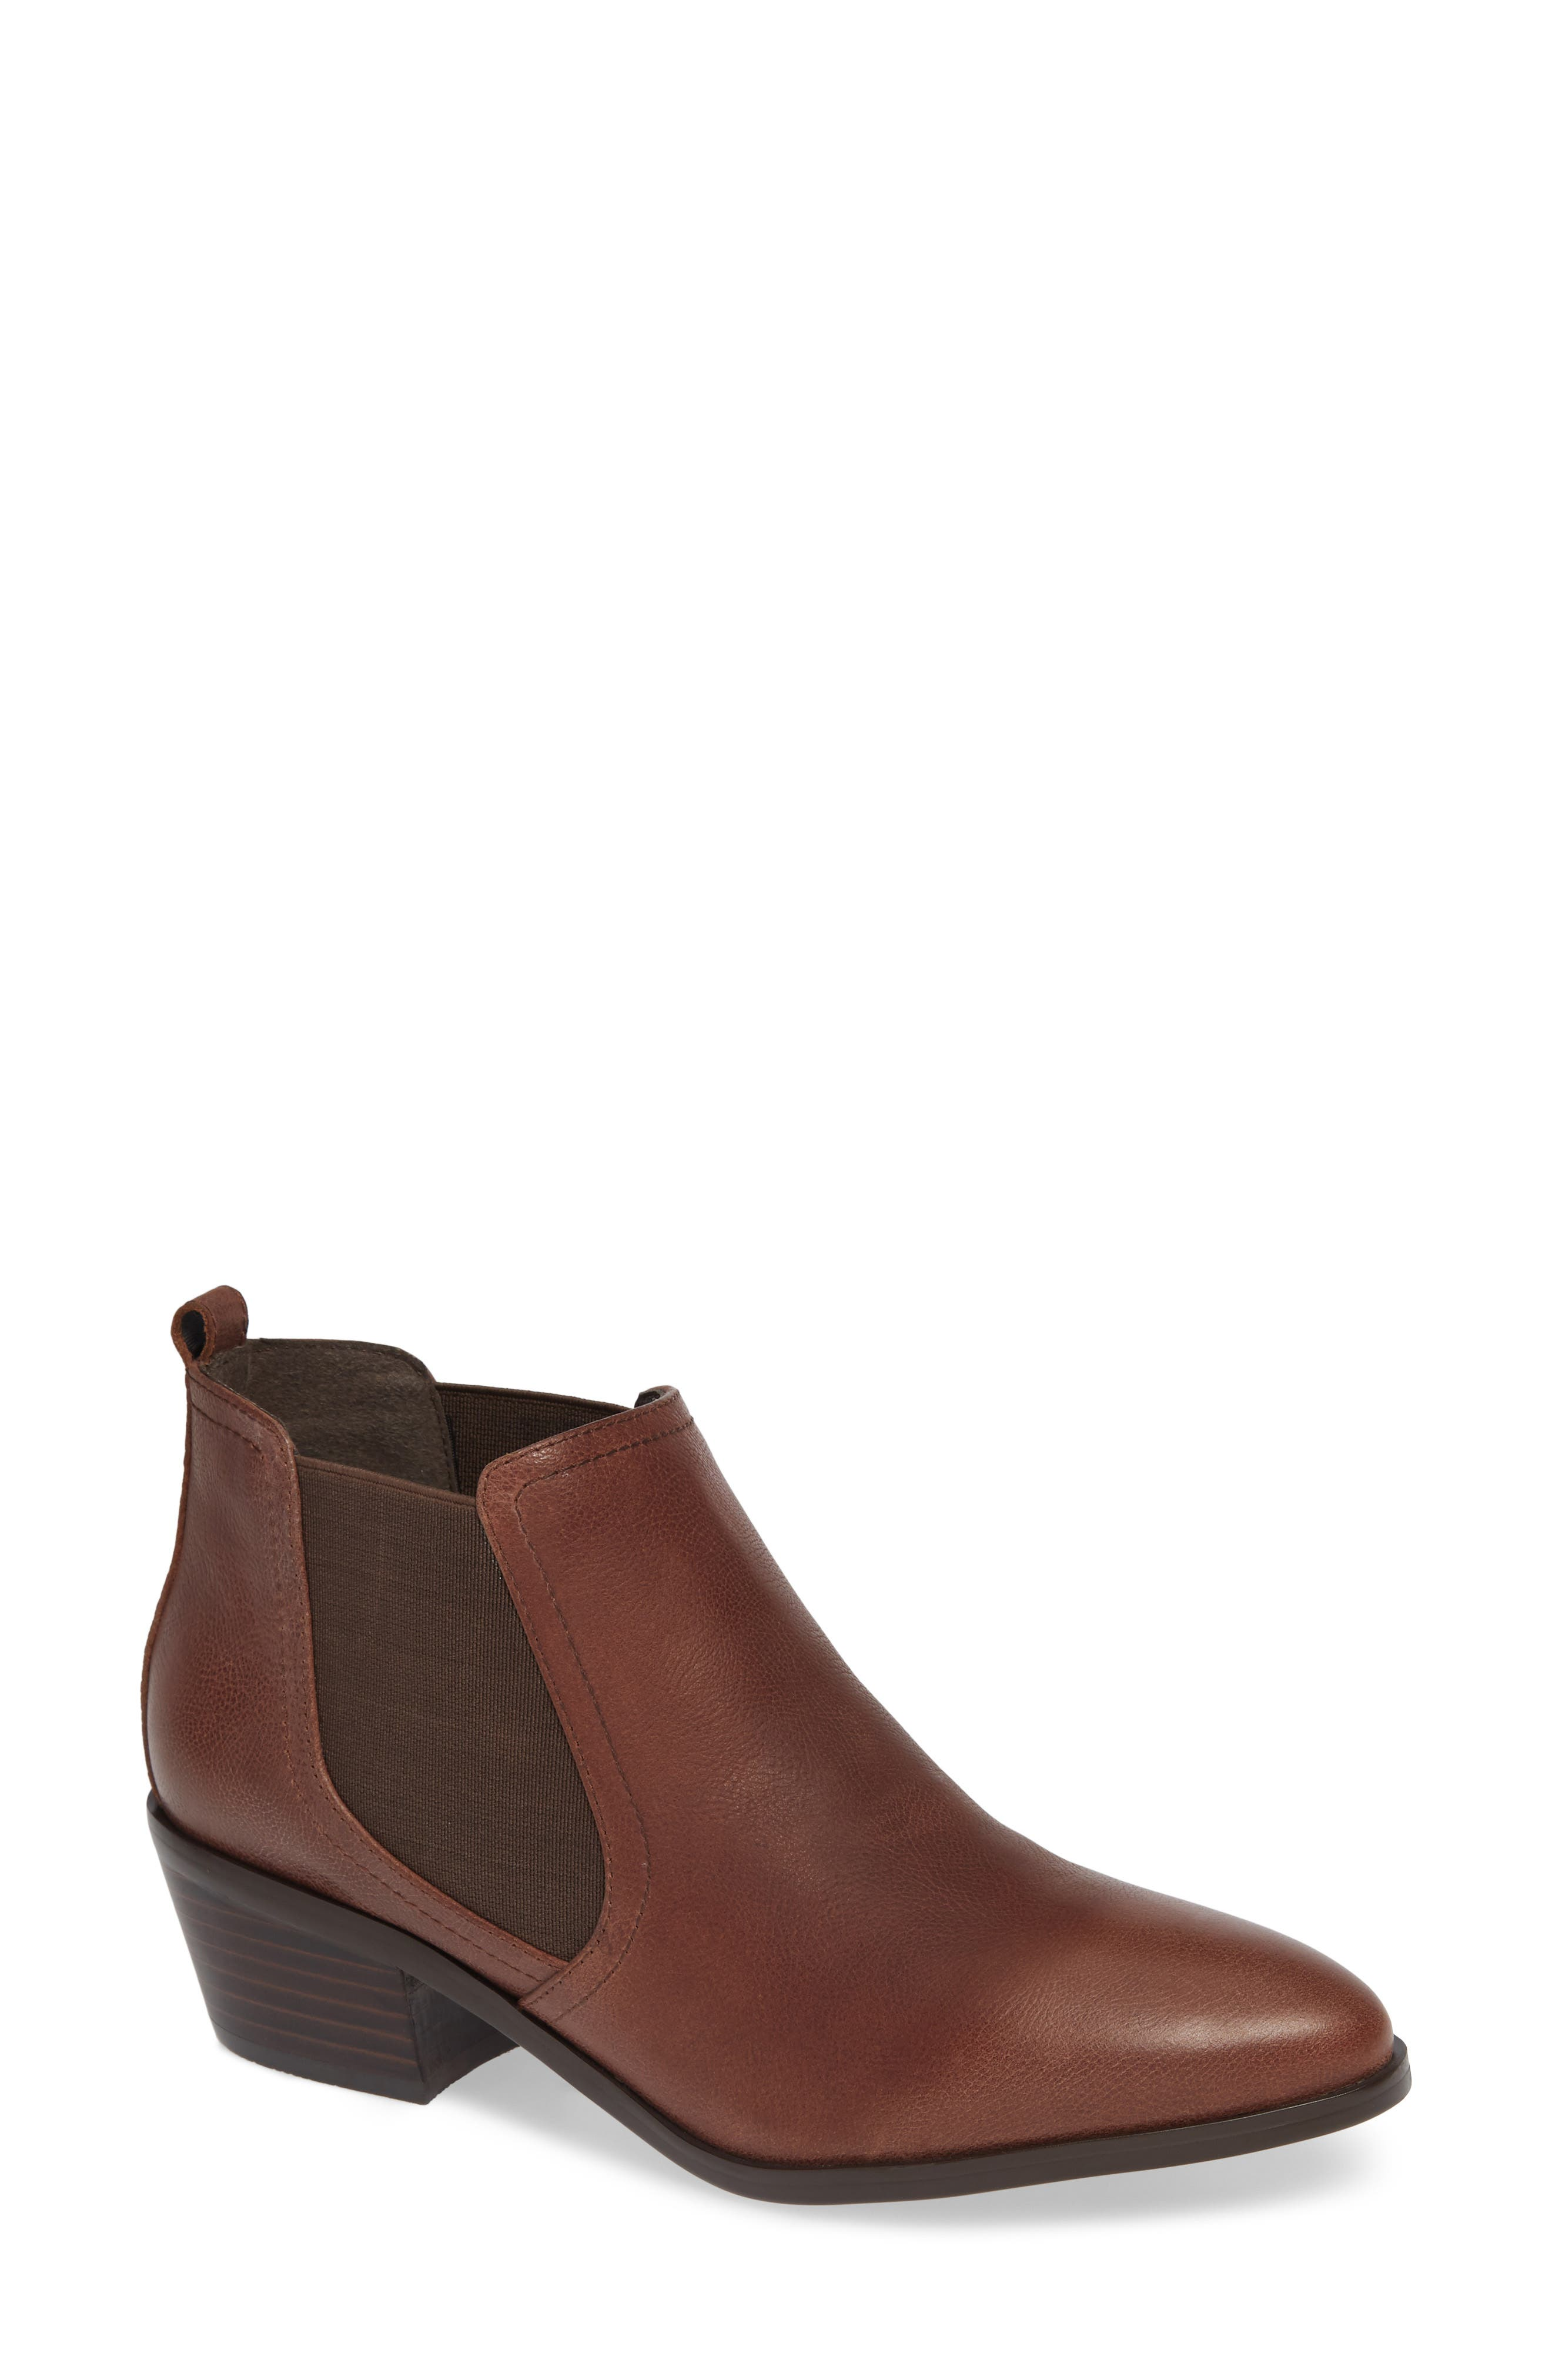 Maxie Chelsea Boot,                             Main thumbnail 1, color,                             LUGGAGE LEATHER